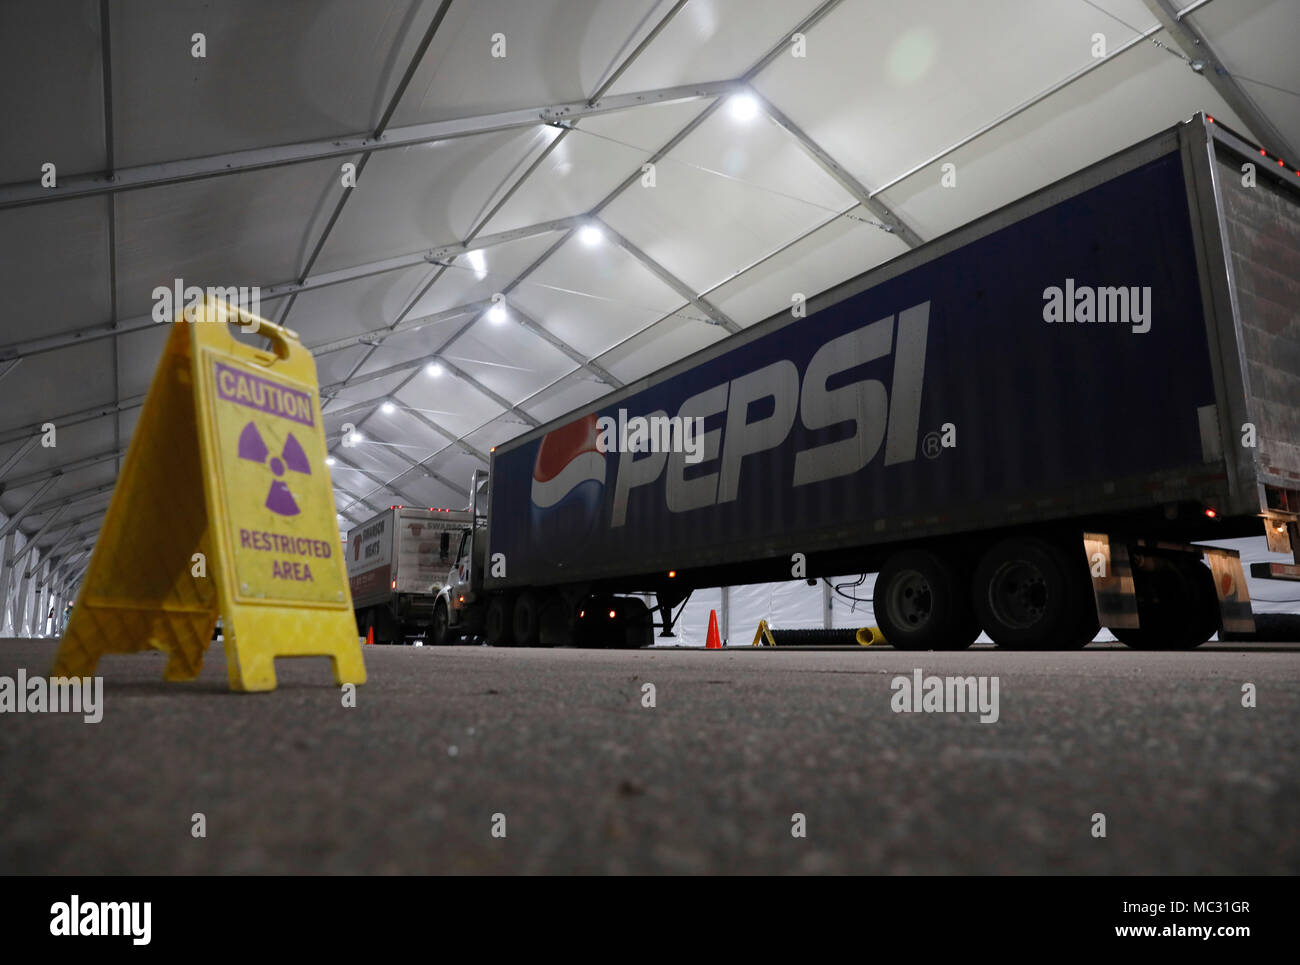 U.S. Customs and Border Protection, Office of Field Operations, officers conduct non-intrusive inspections on commercial vehicles destined for U.S. Bank Stadium to deliver provisions and equipment for Super Bowl LII in Minneapolis, Minn., Jan. 30, 2018. On Sunday, Feb. 4, the Philadelphia Eagles will face off against the New England Patriots for the NFL championship title. U.S. Customs and Border Protection photo by Glenn Fawcett - Stock Image